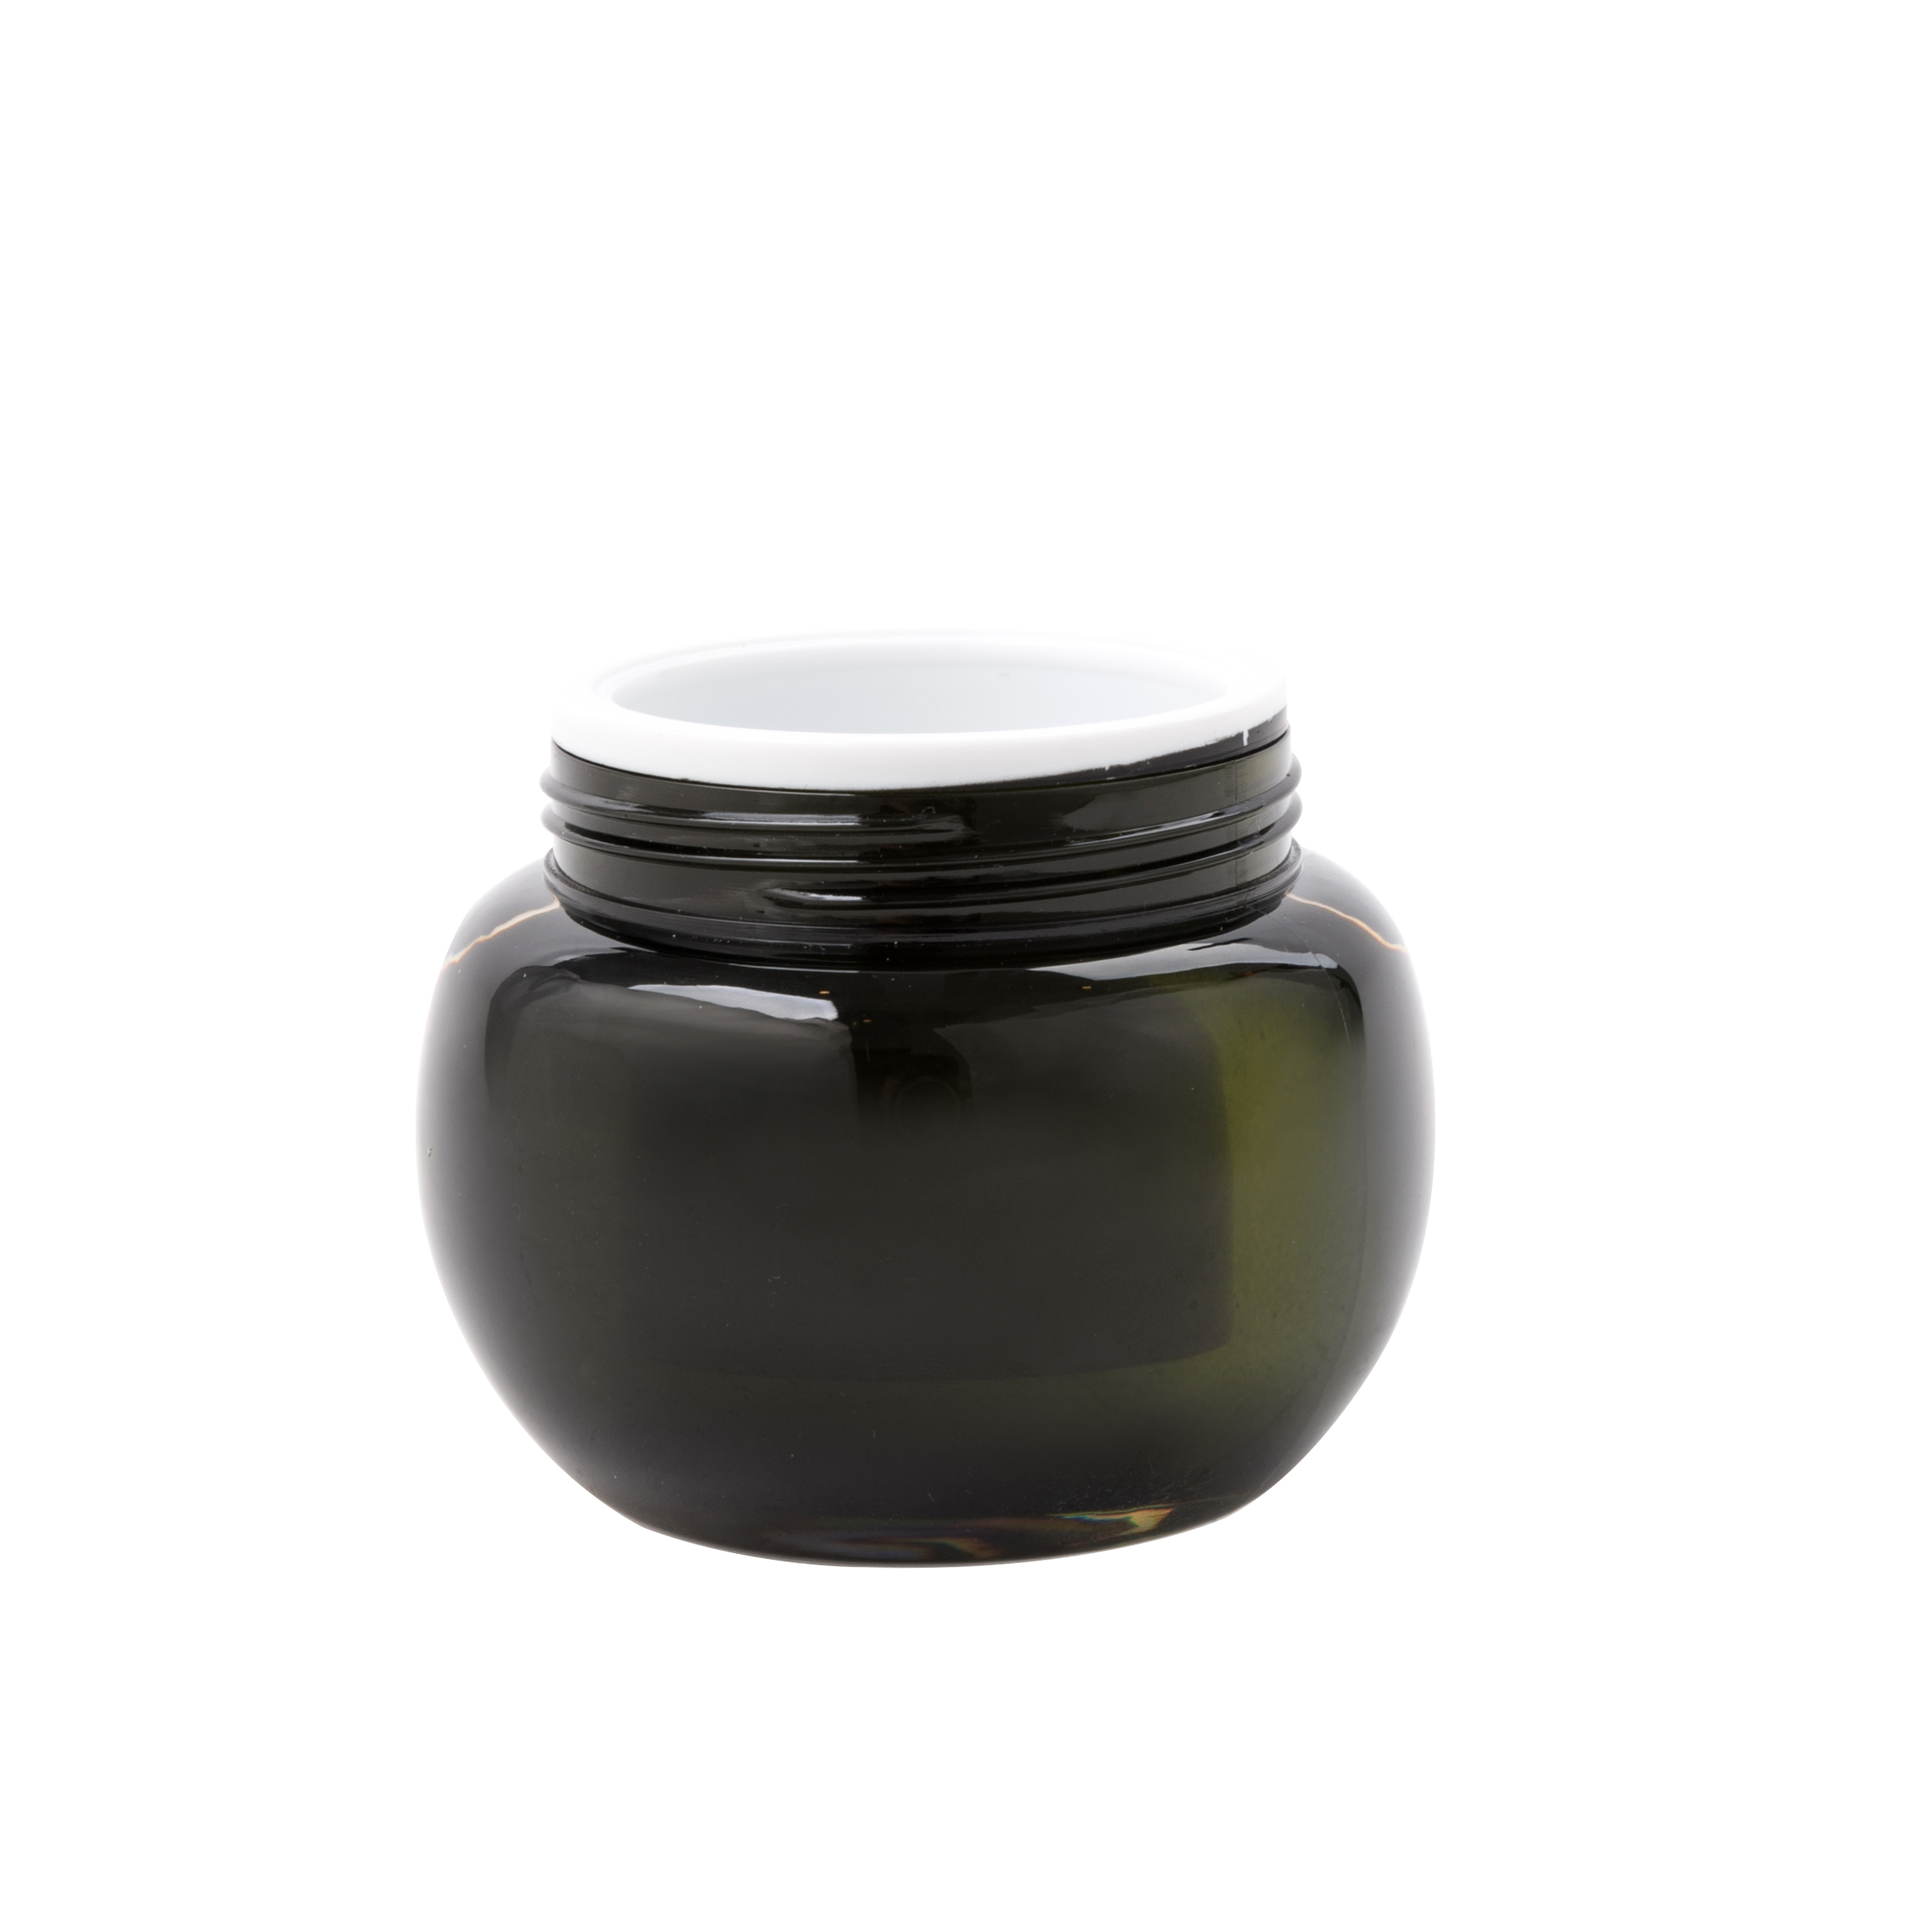 15g 30g 50g Face Acrylic Cream Containers Jar